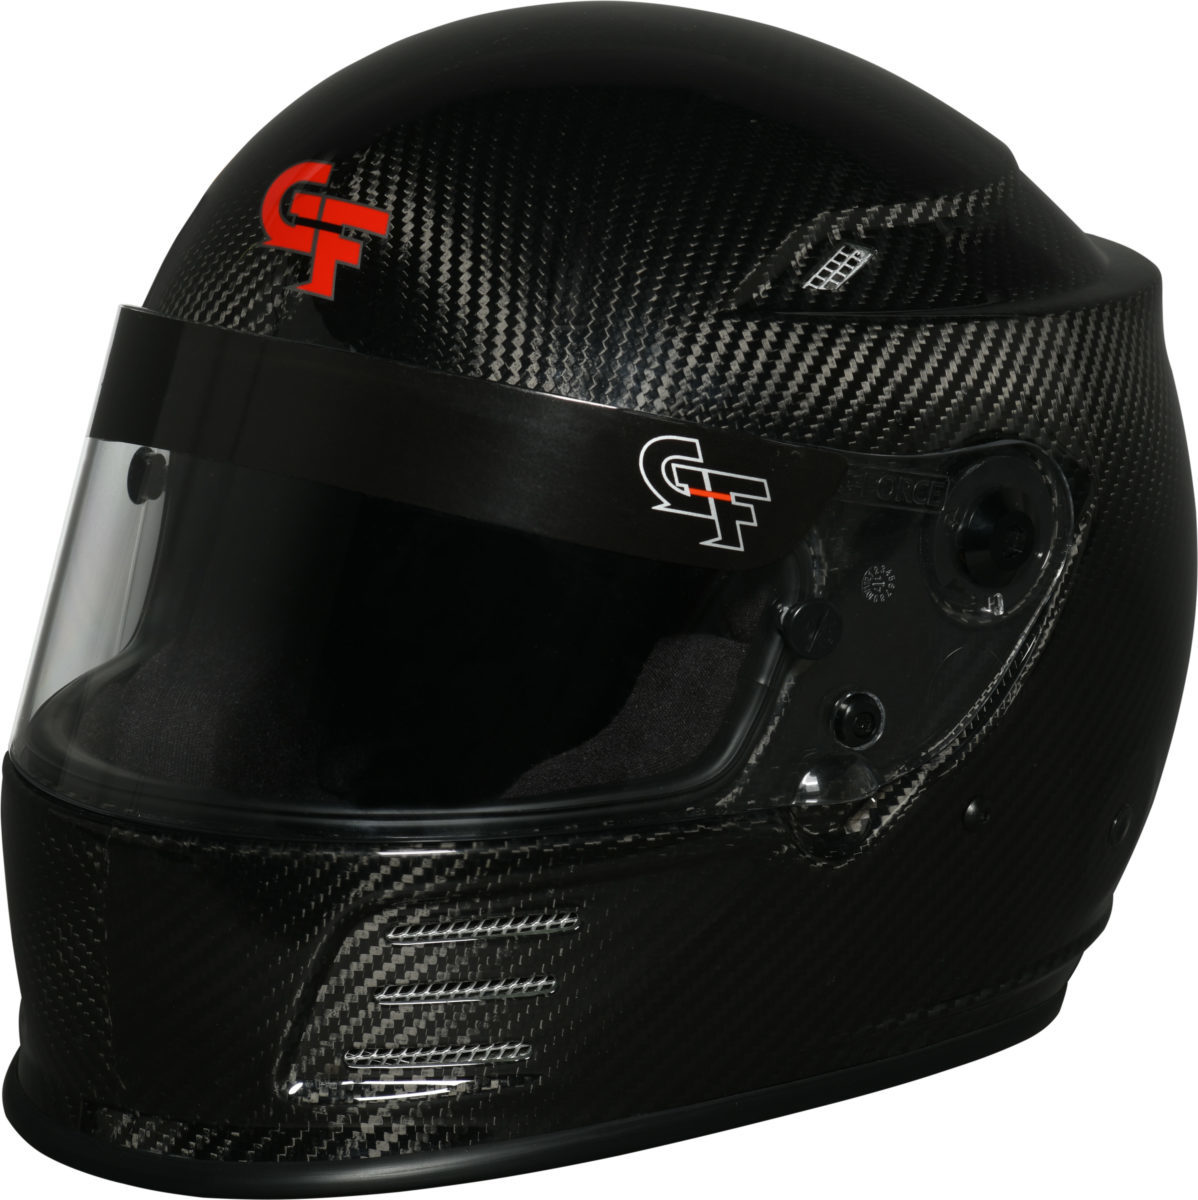 G-Force 3411SMLBK Helmet, Revo, Full Face, Snell SA2015, Head and Neck Support Ready, Carbon Fiber, Small, Each